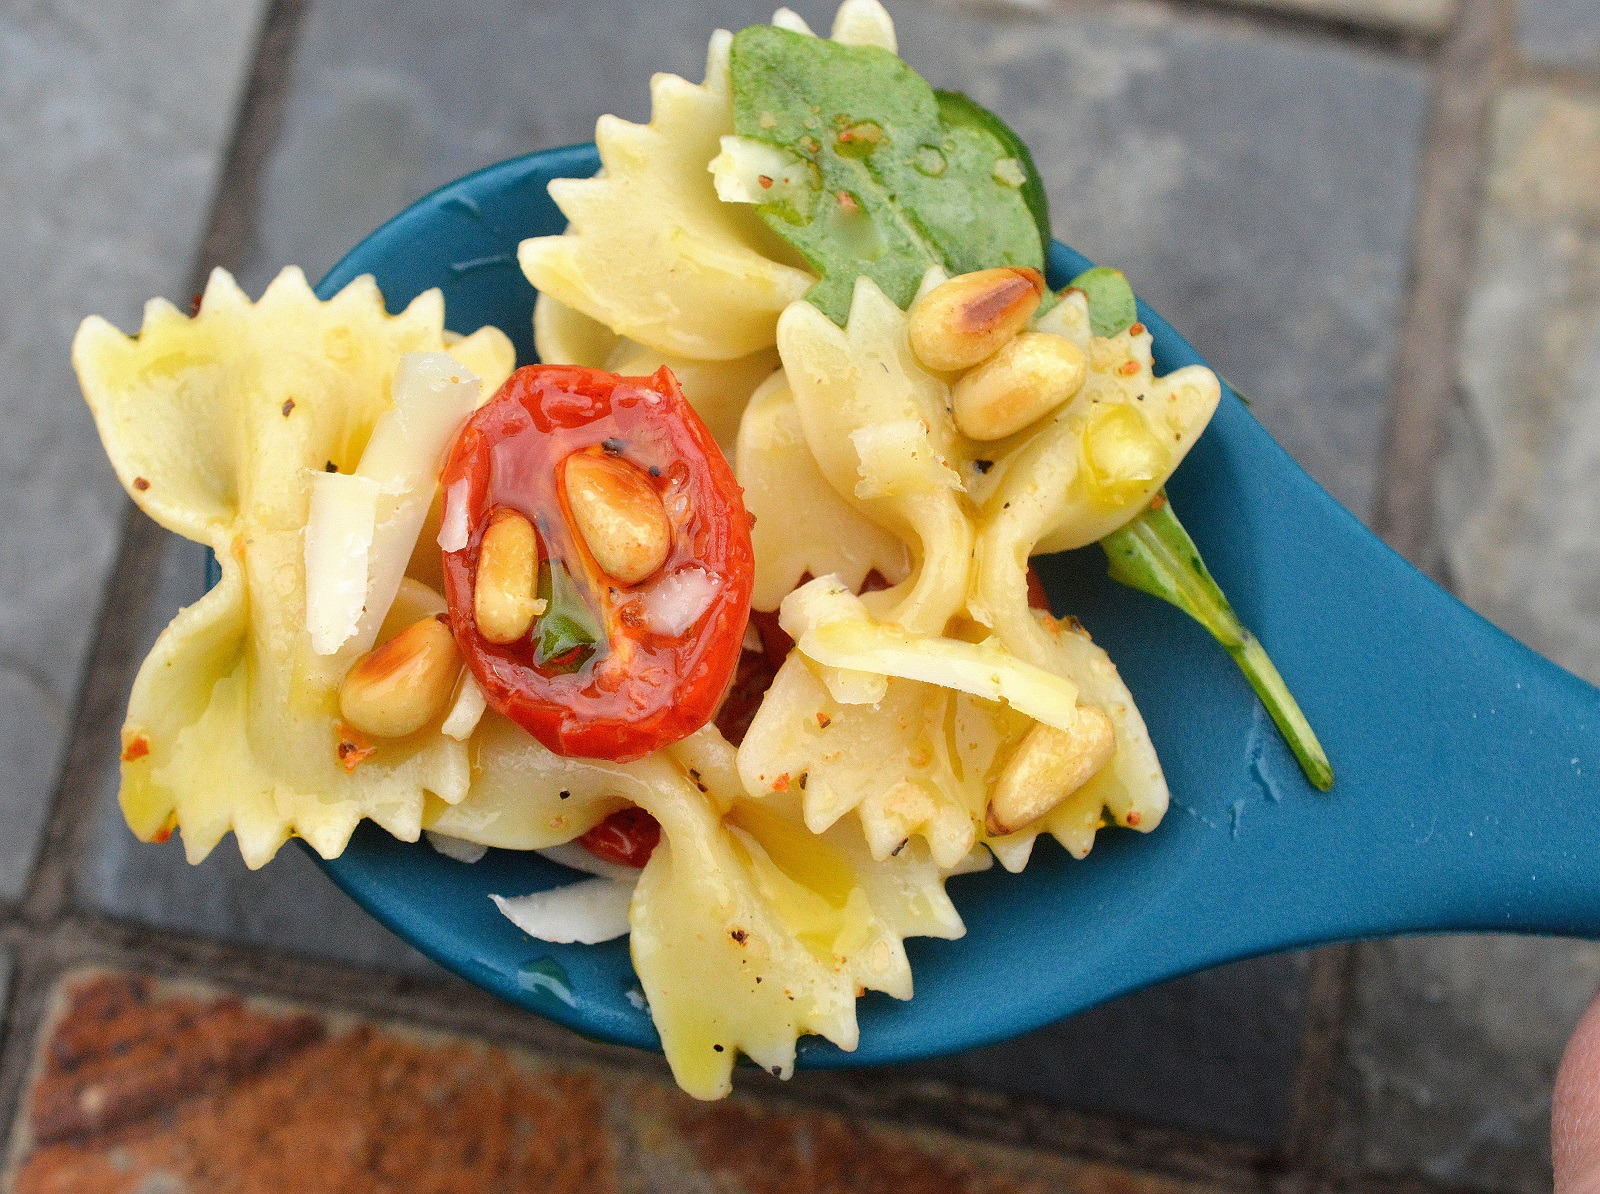 Summer Pasta Salad with Roasted Tomatoes and Pine Nuts in a Garlic Oil...Yummmm!